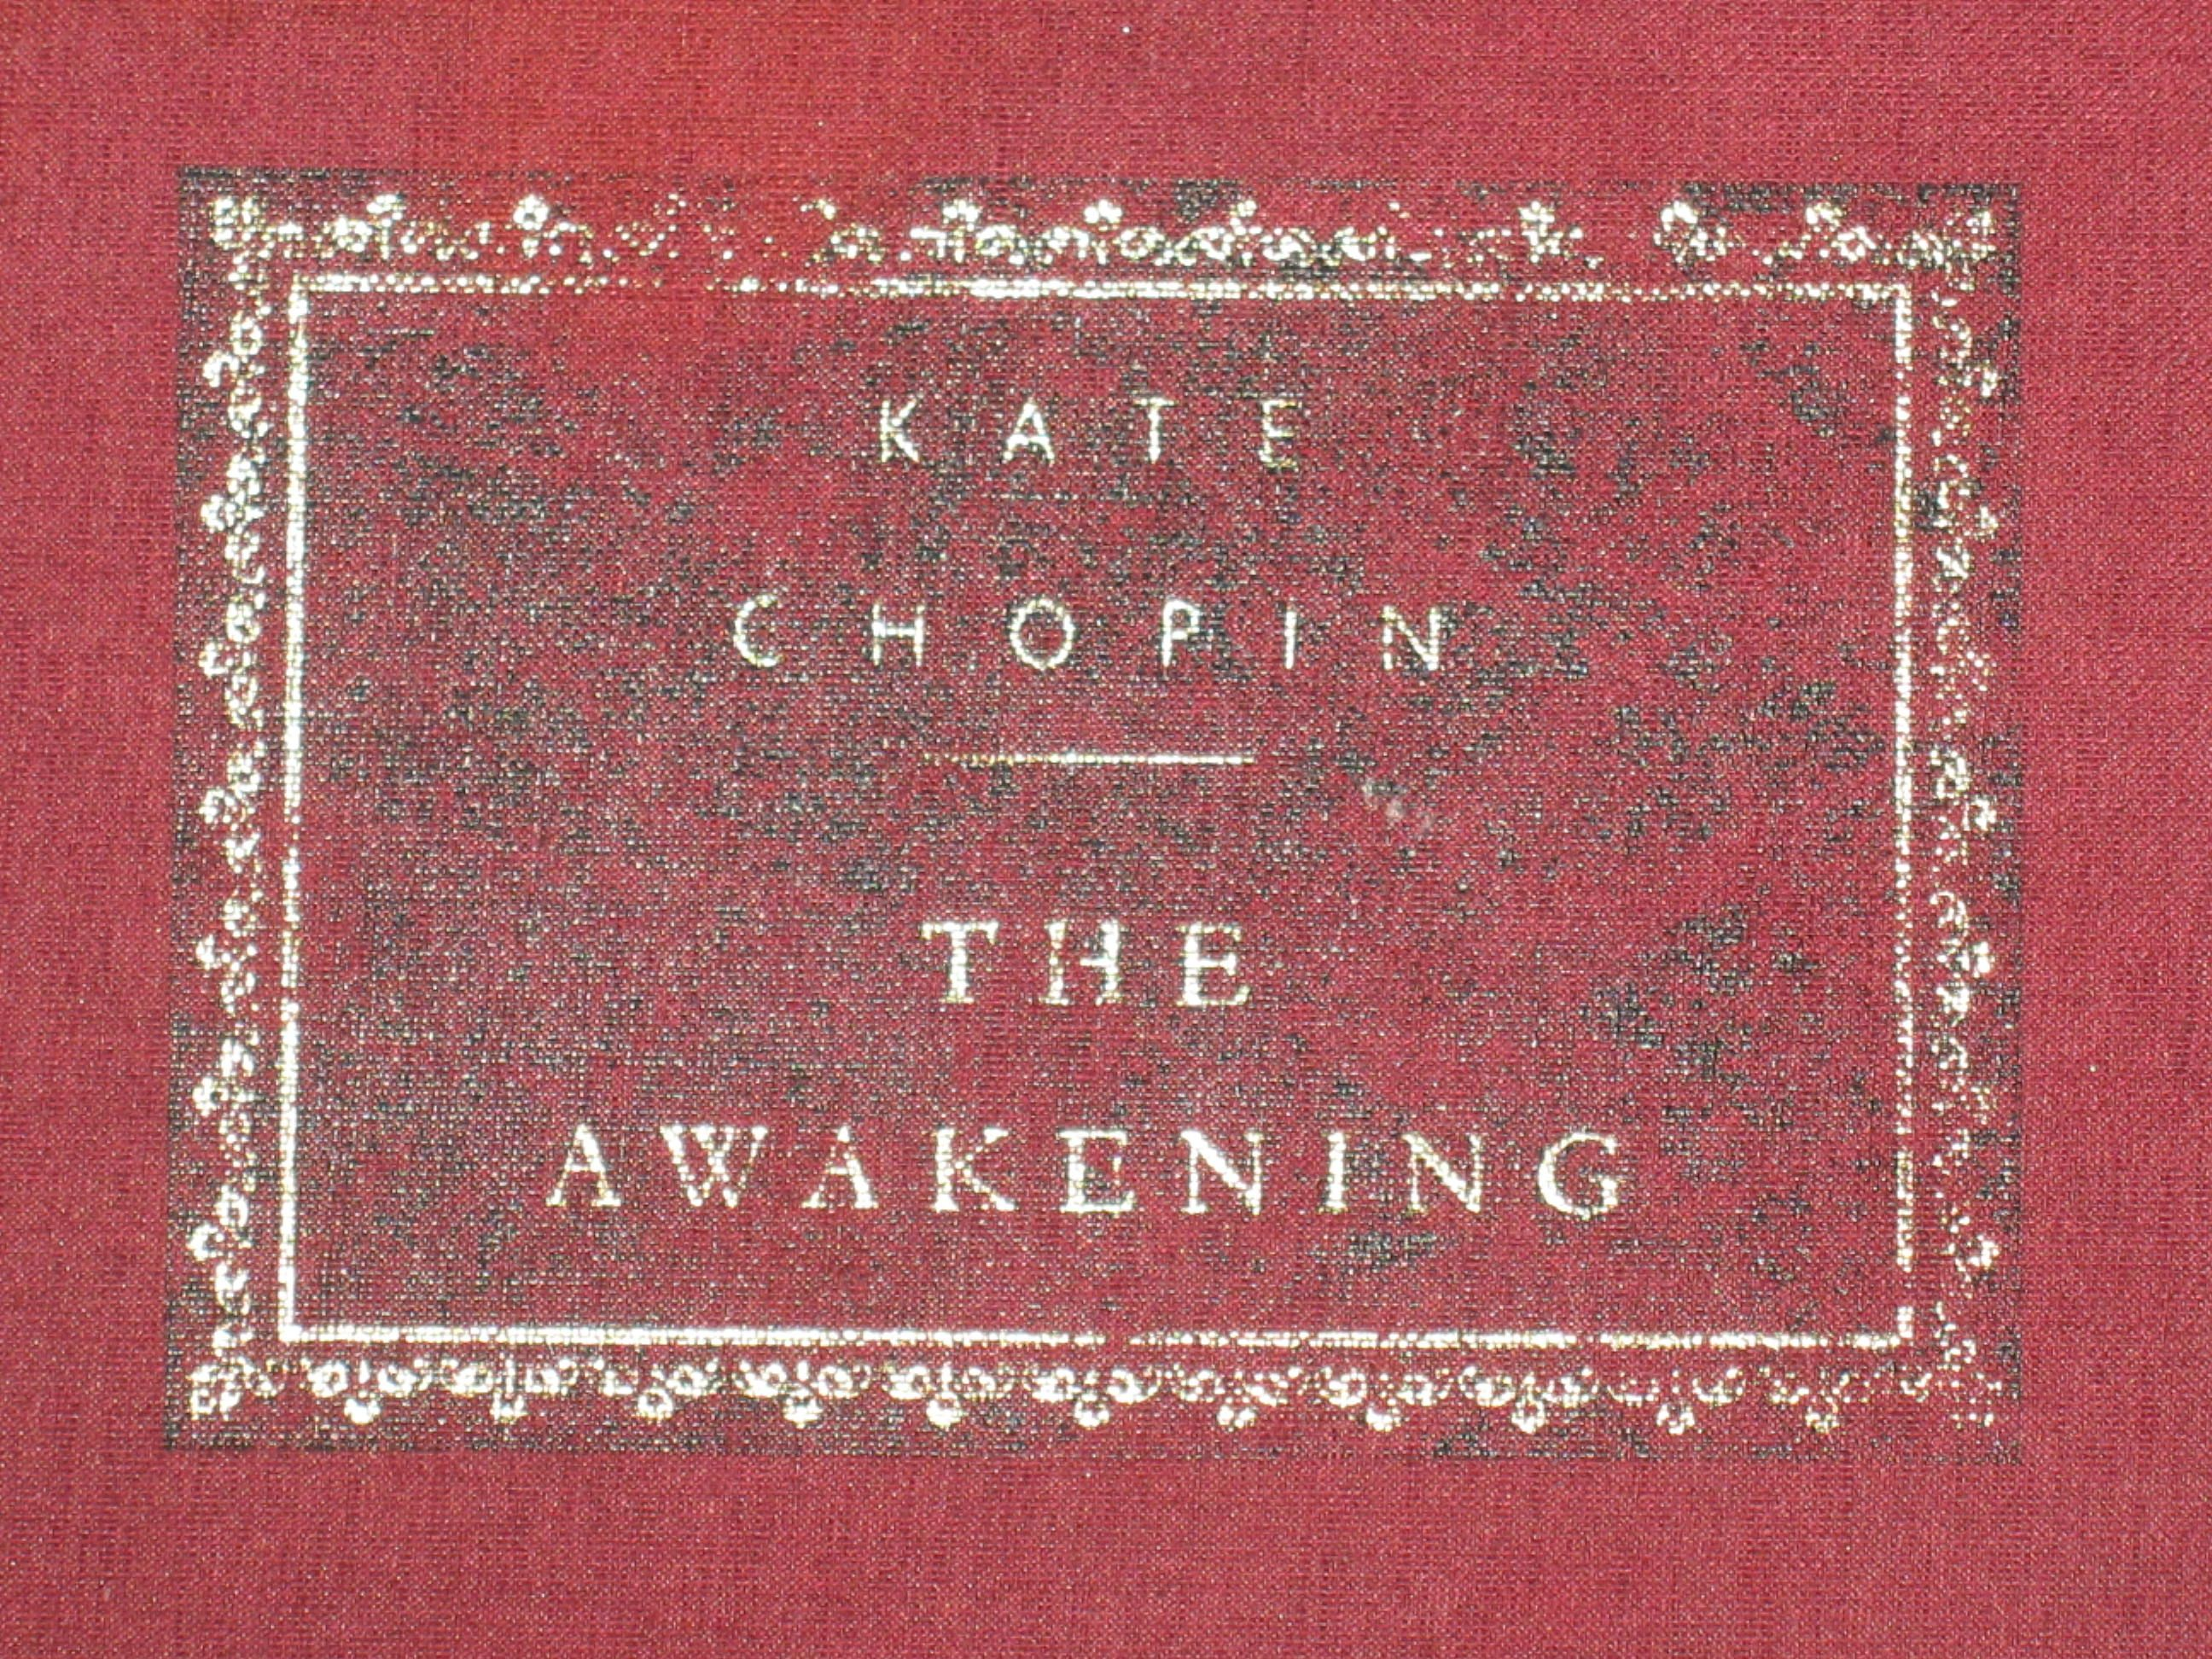 Essays on the awakening by kate chopin